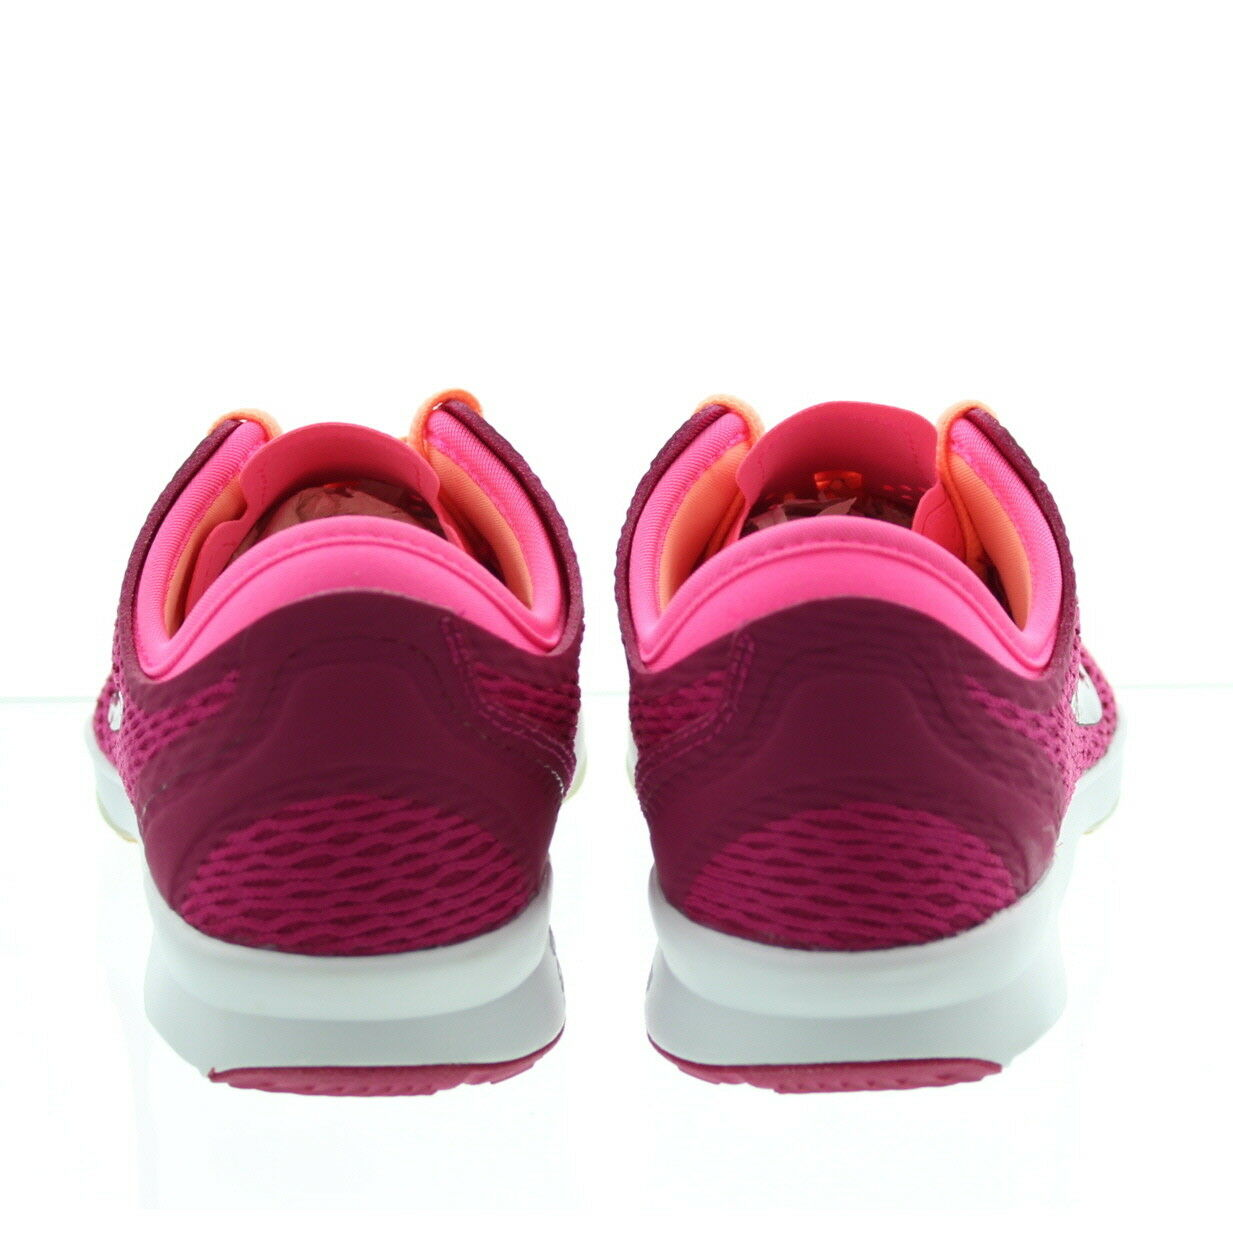 wholesale dealer 9193e 81aa4 ... Nike 704658 Womens Zoom Fit Fit Fit Cross Trainer Training Low Top Sneakers  Shoes 467076 ...